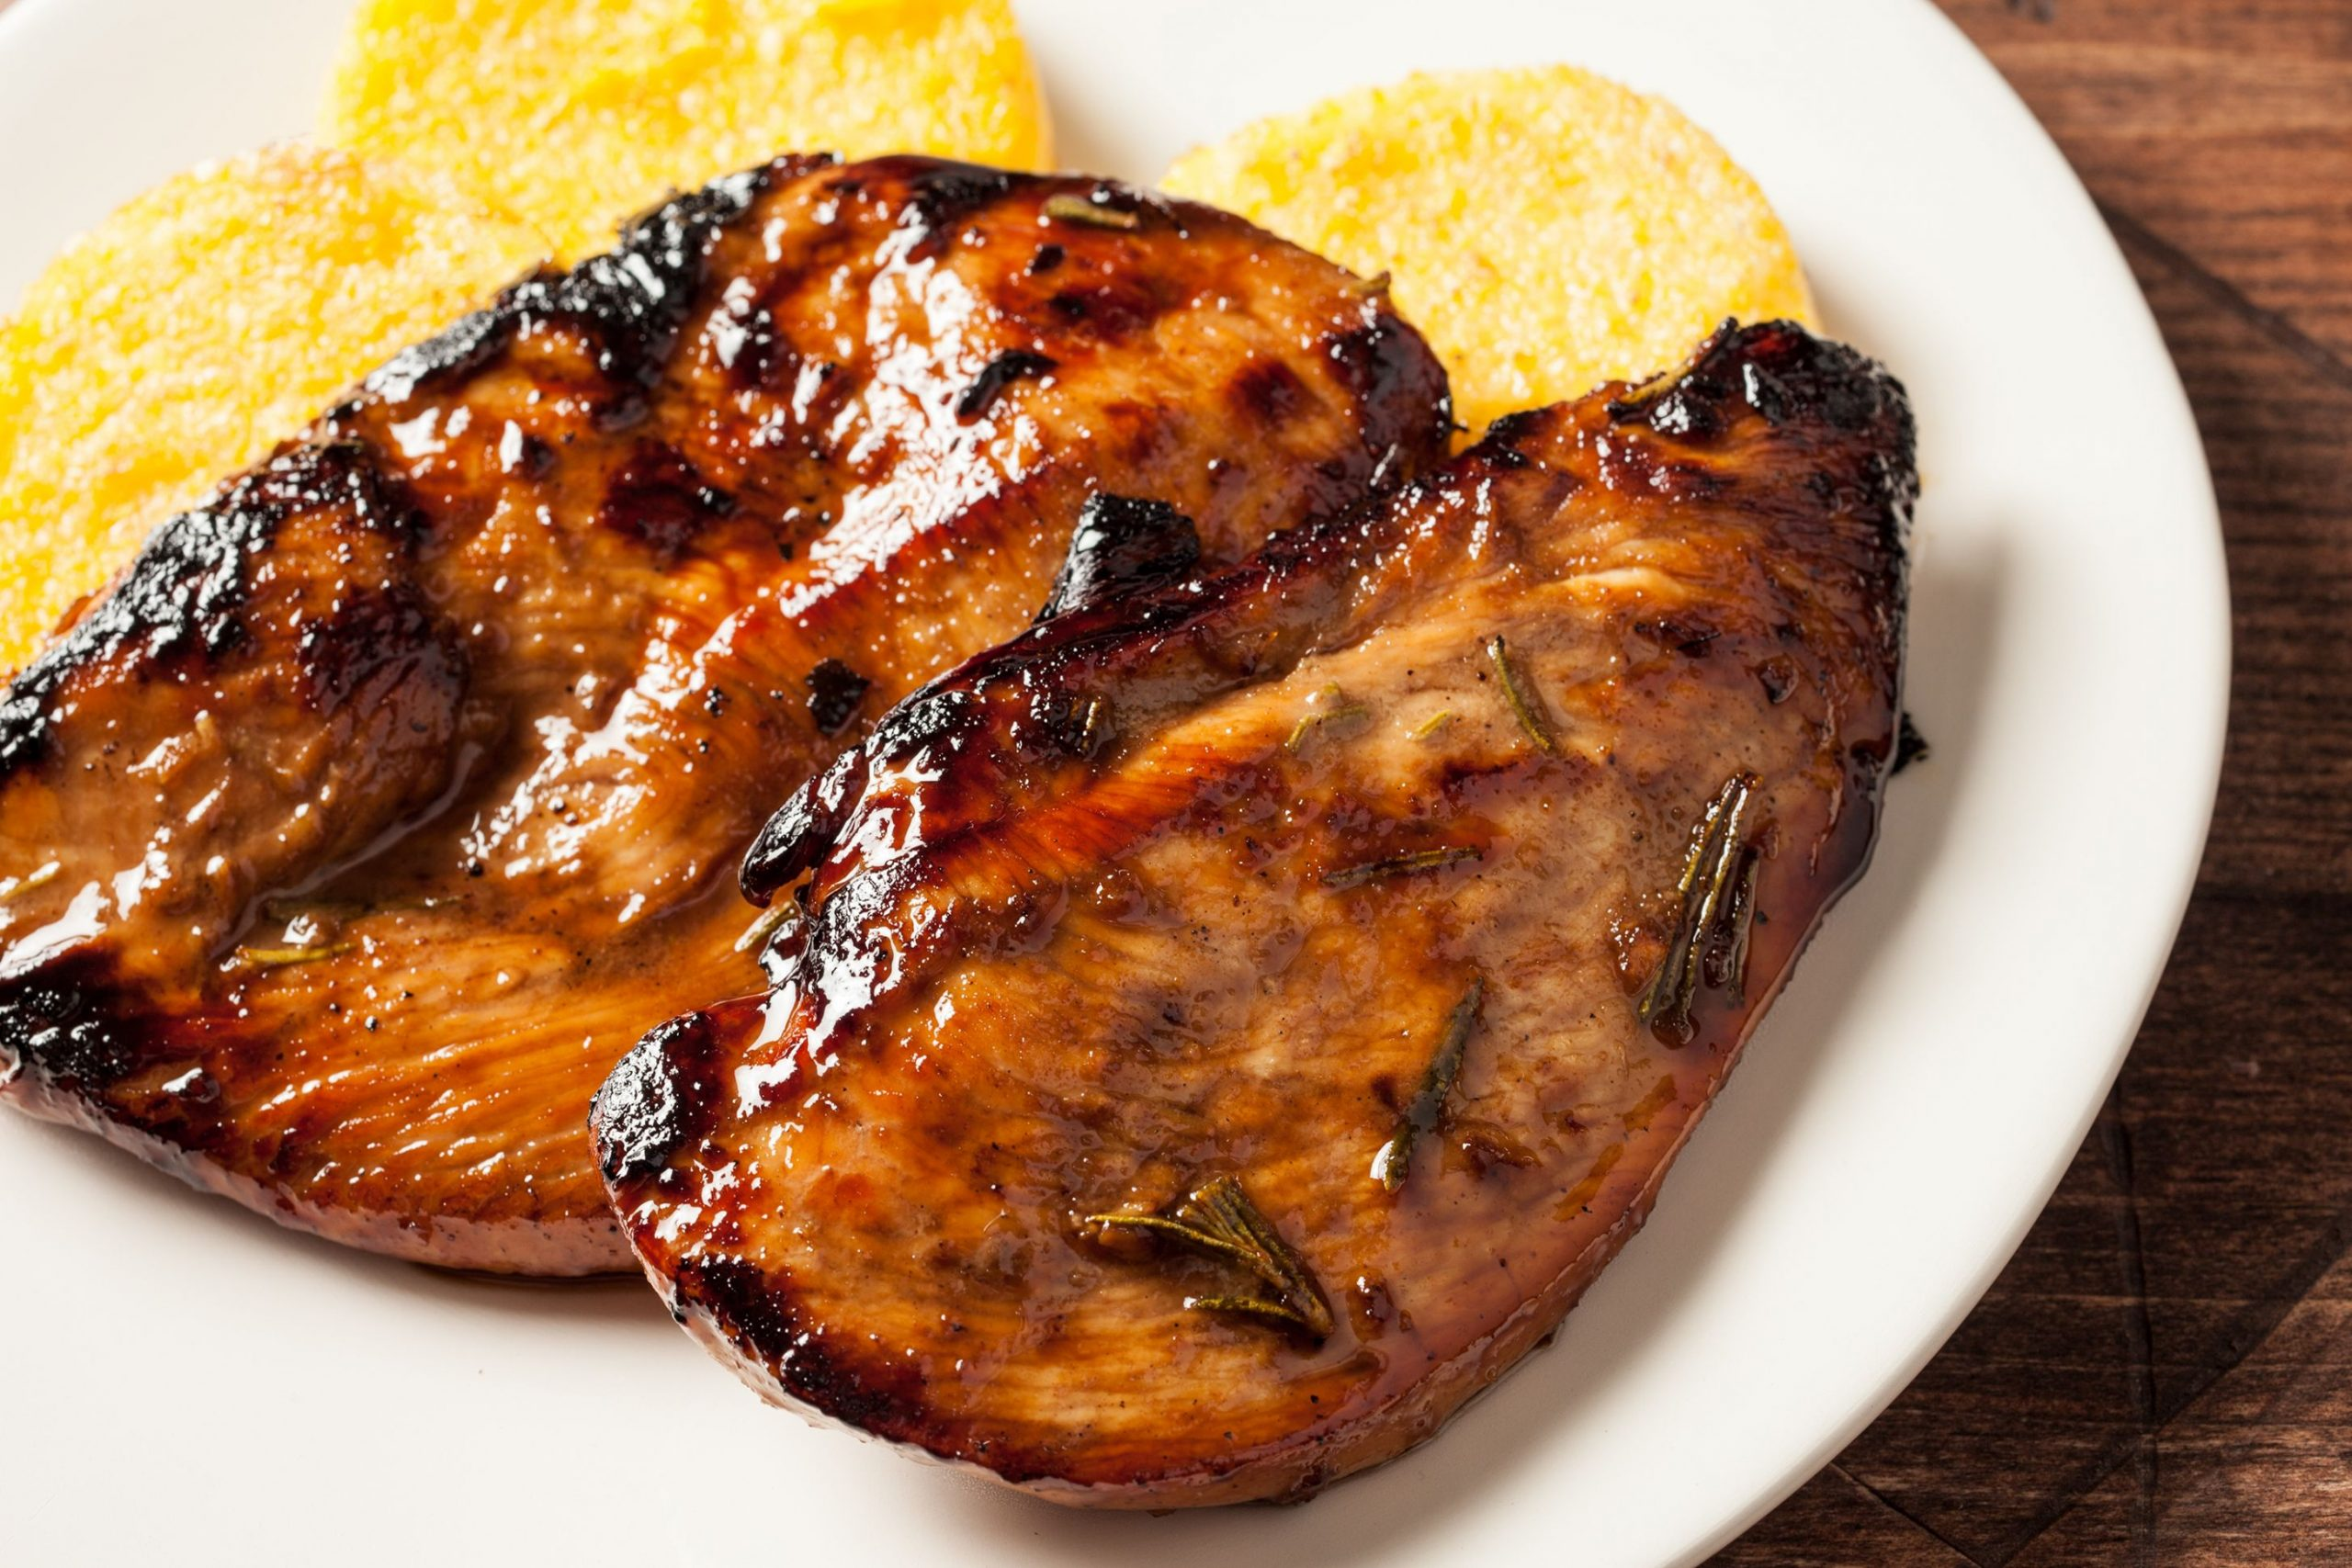 Grilled Chicken Breasts with Balsamic Rosemary Marinade - Recipes Chicken Breast Bbq